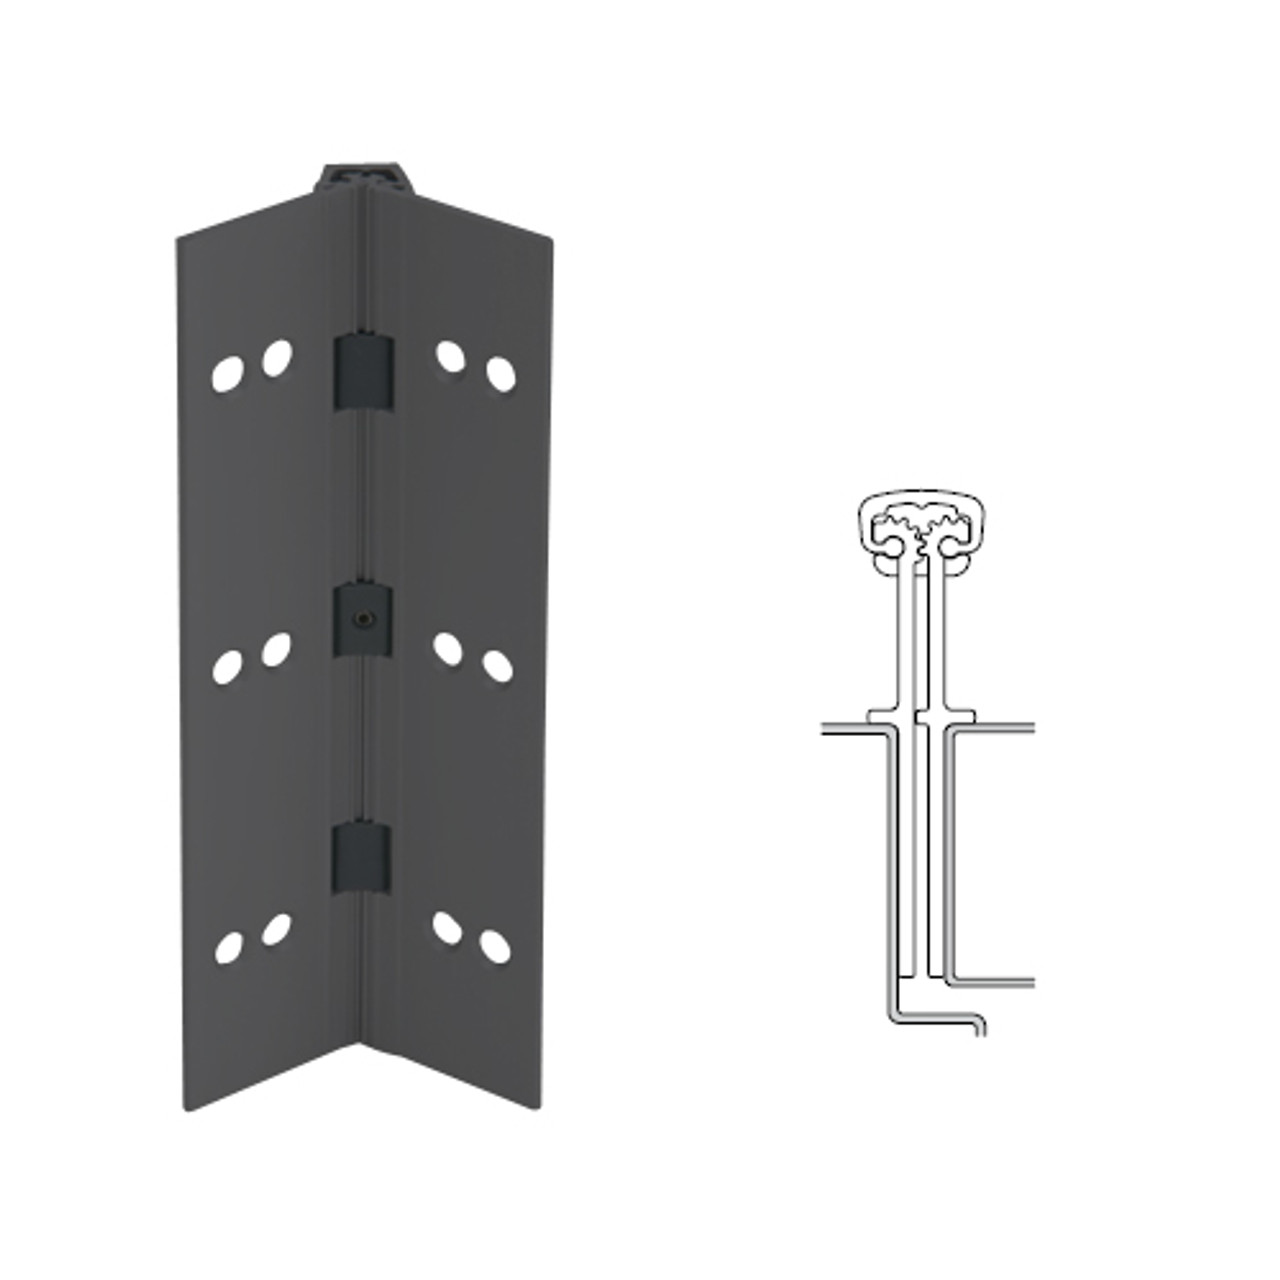 040XY-315AN-120-SECWDHM IVES Full Mortise Continuous Geared Hinges with Security Screws - Hex Pin Drive in Anodized Black